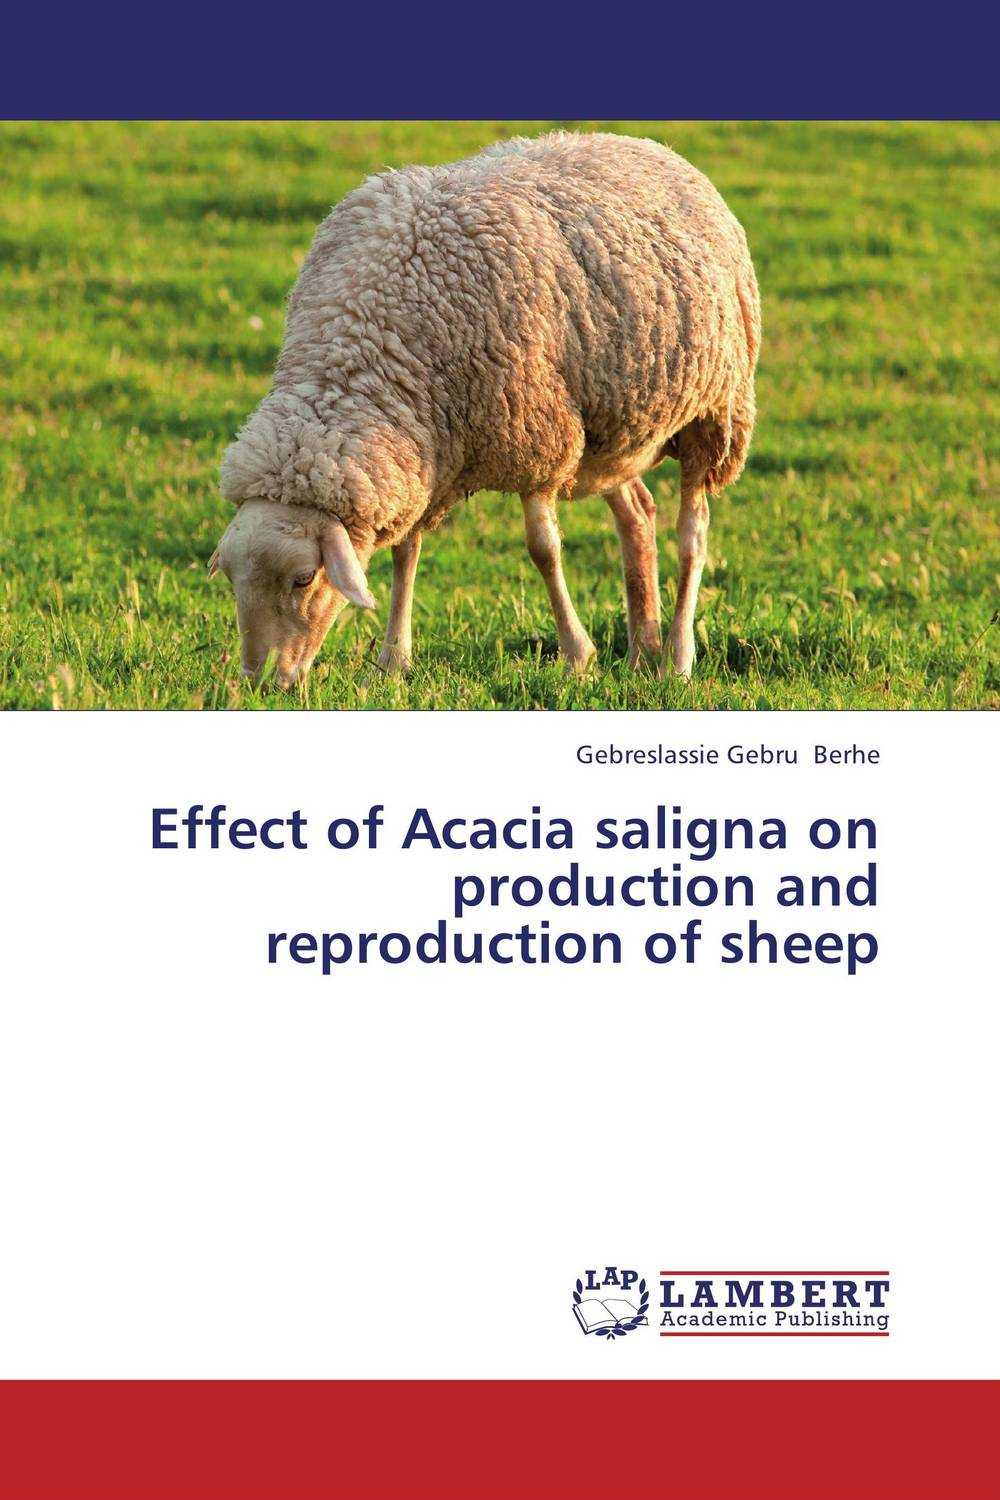 Effect of Acacia saligna on production and reproduction of sheep adding value to the citrus pulp by enzyme biotechnology production